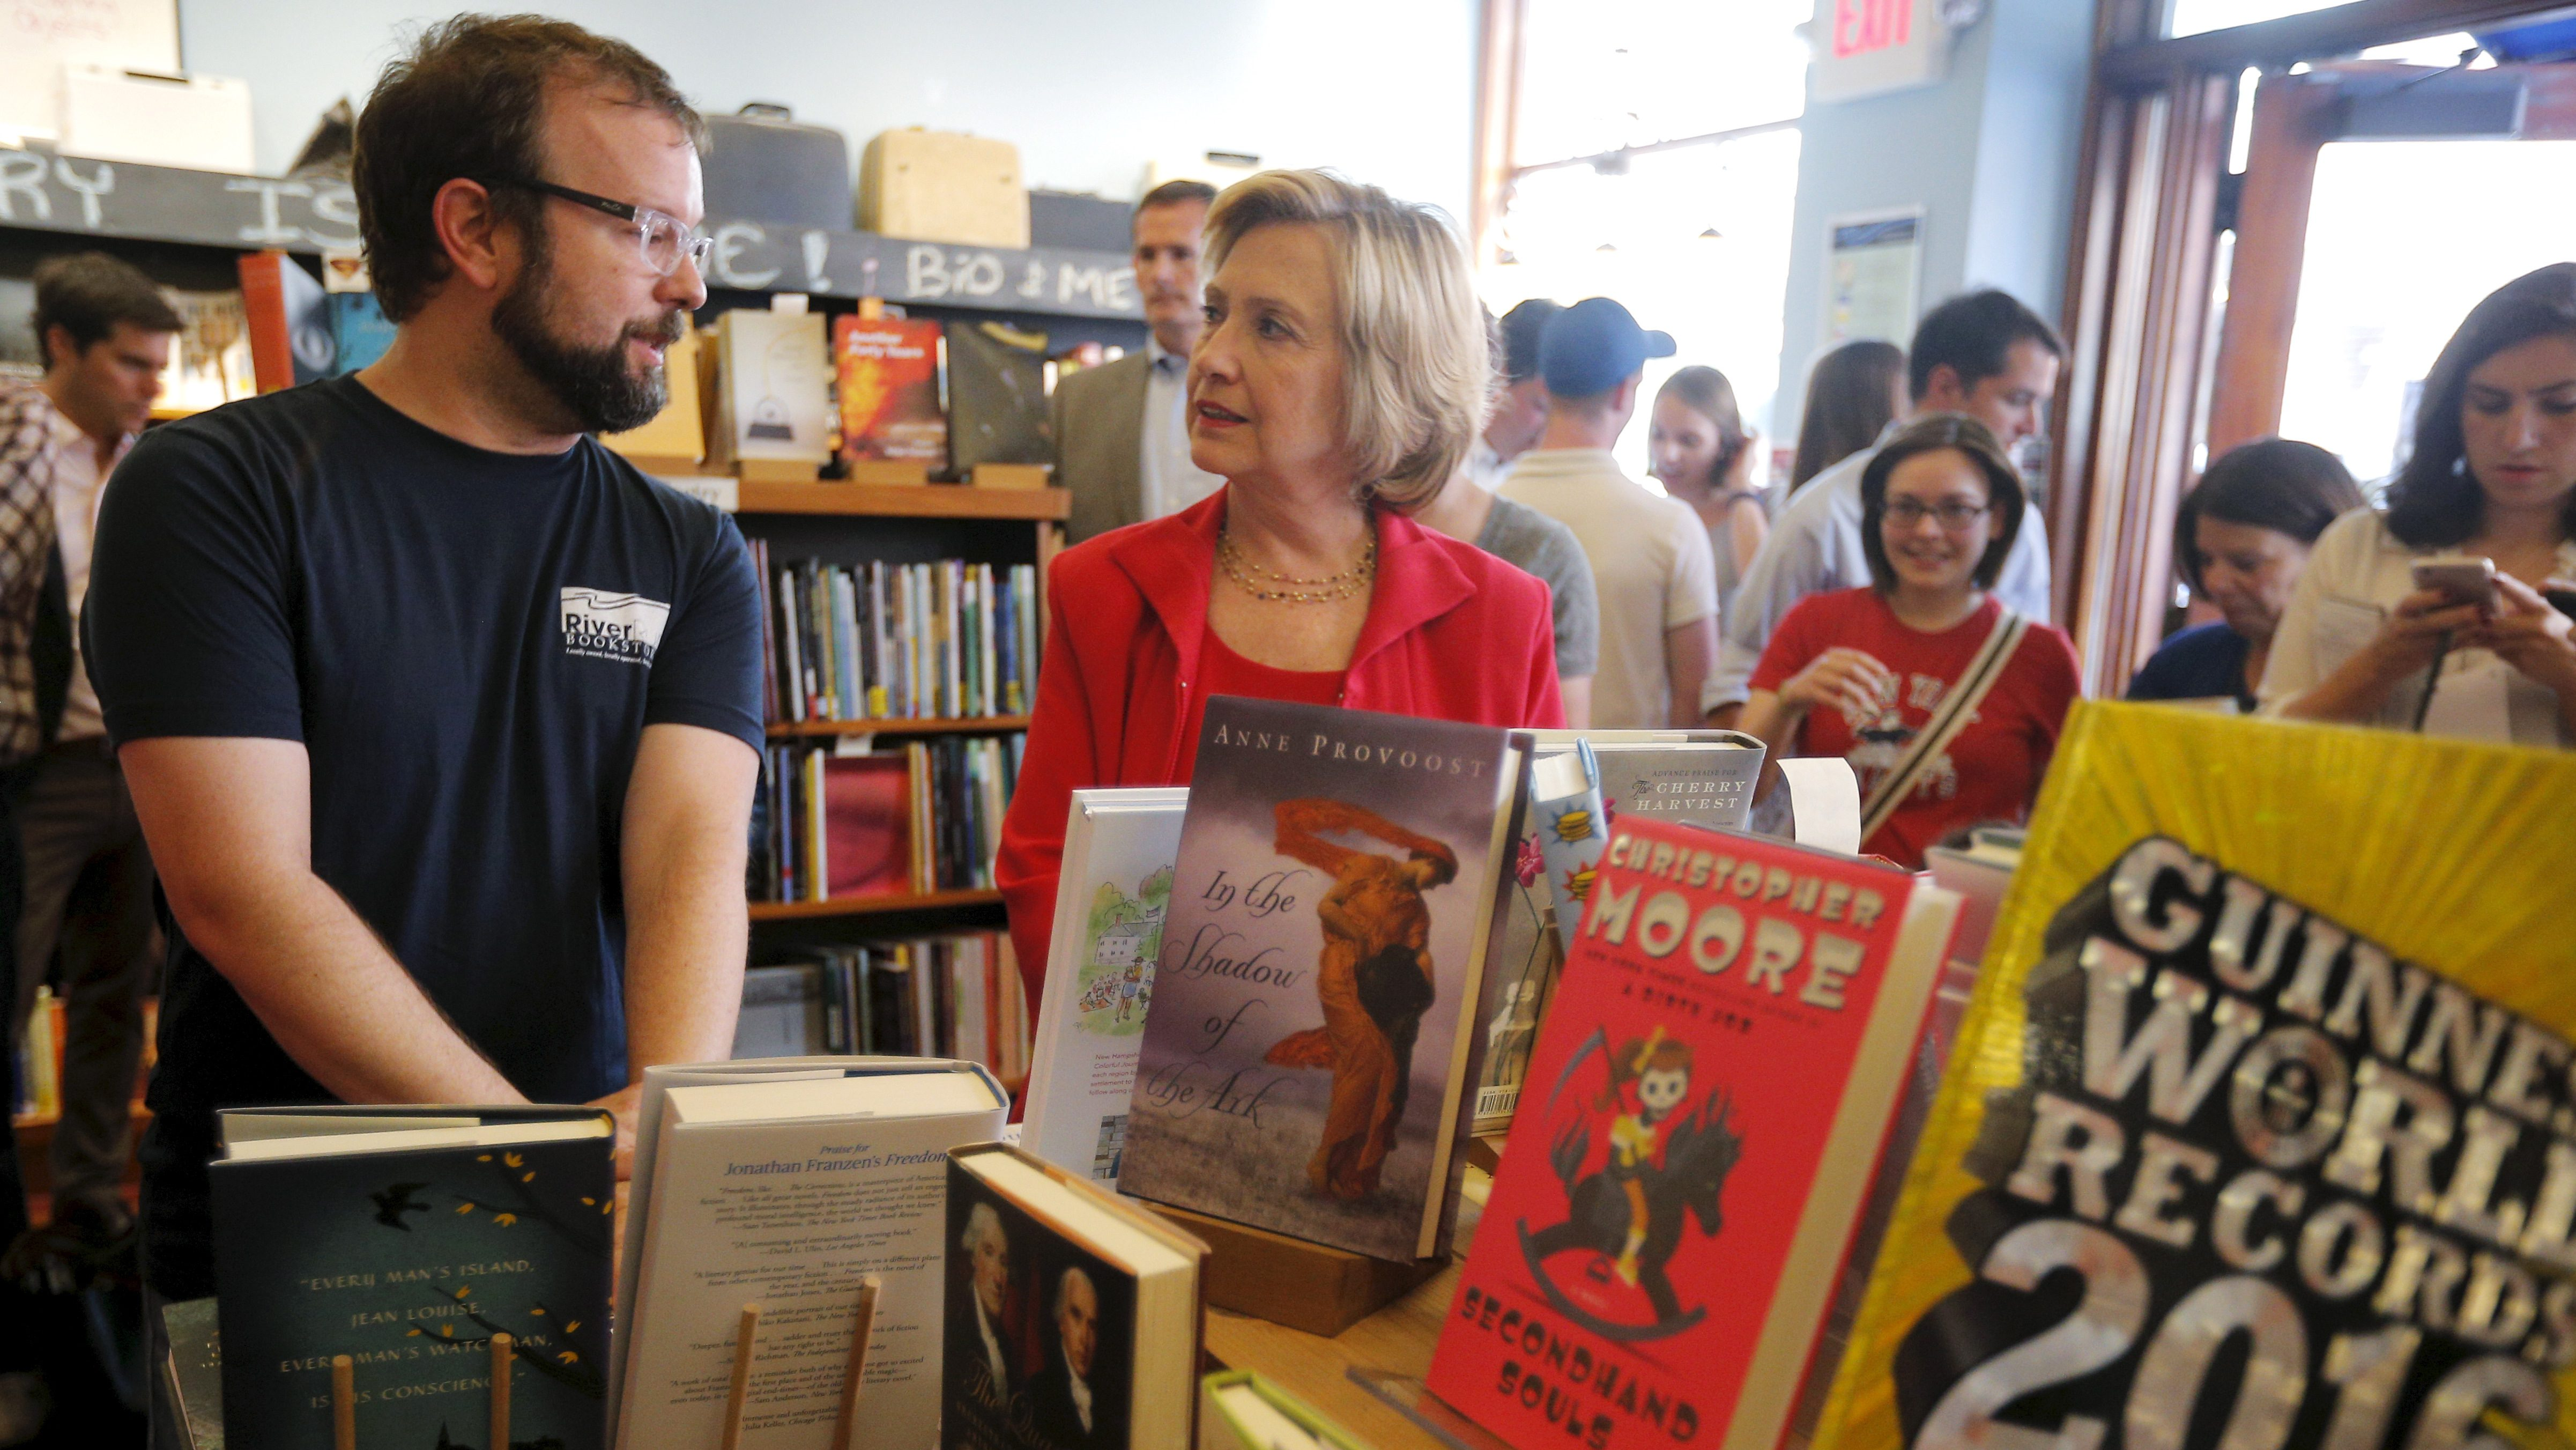 Hillary Clinton at the River Run Bookstore in Portsmouth, New Hampshire